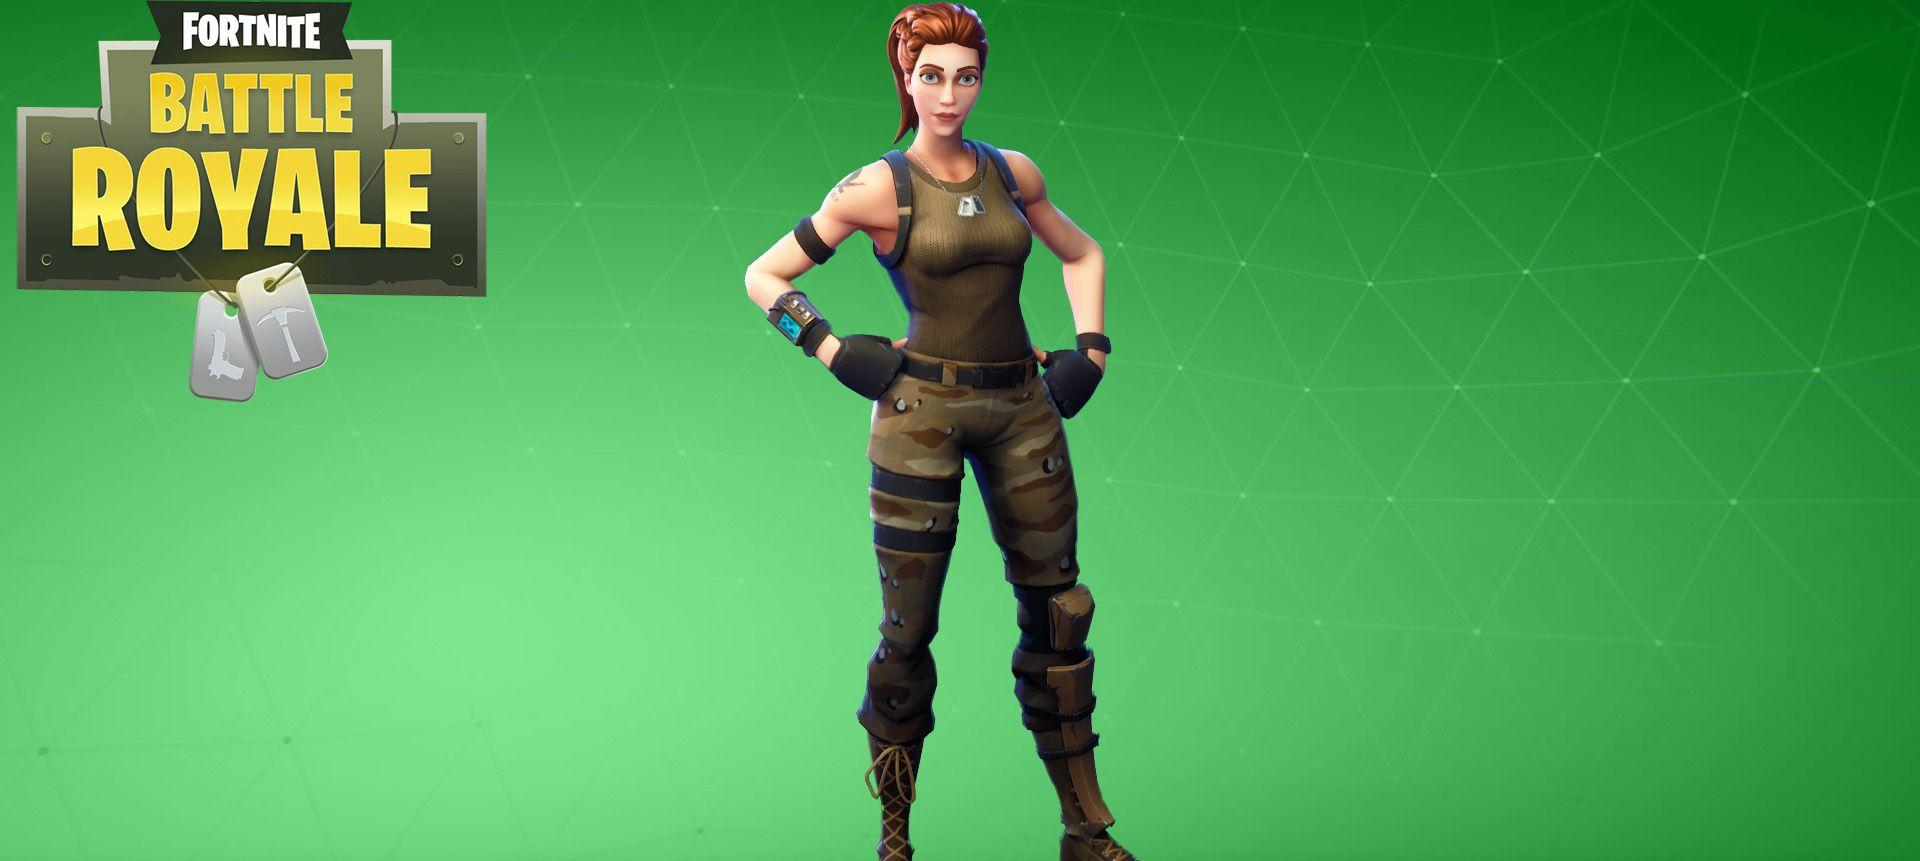 Tower Recon Specialist Fortnite Outfit Skin How to Get